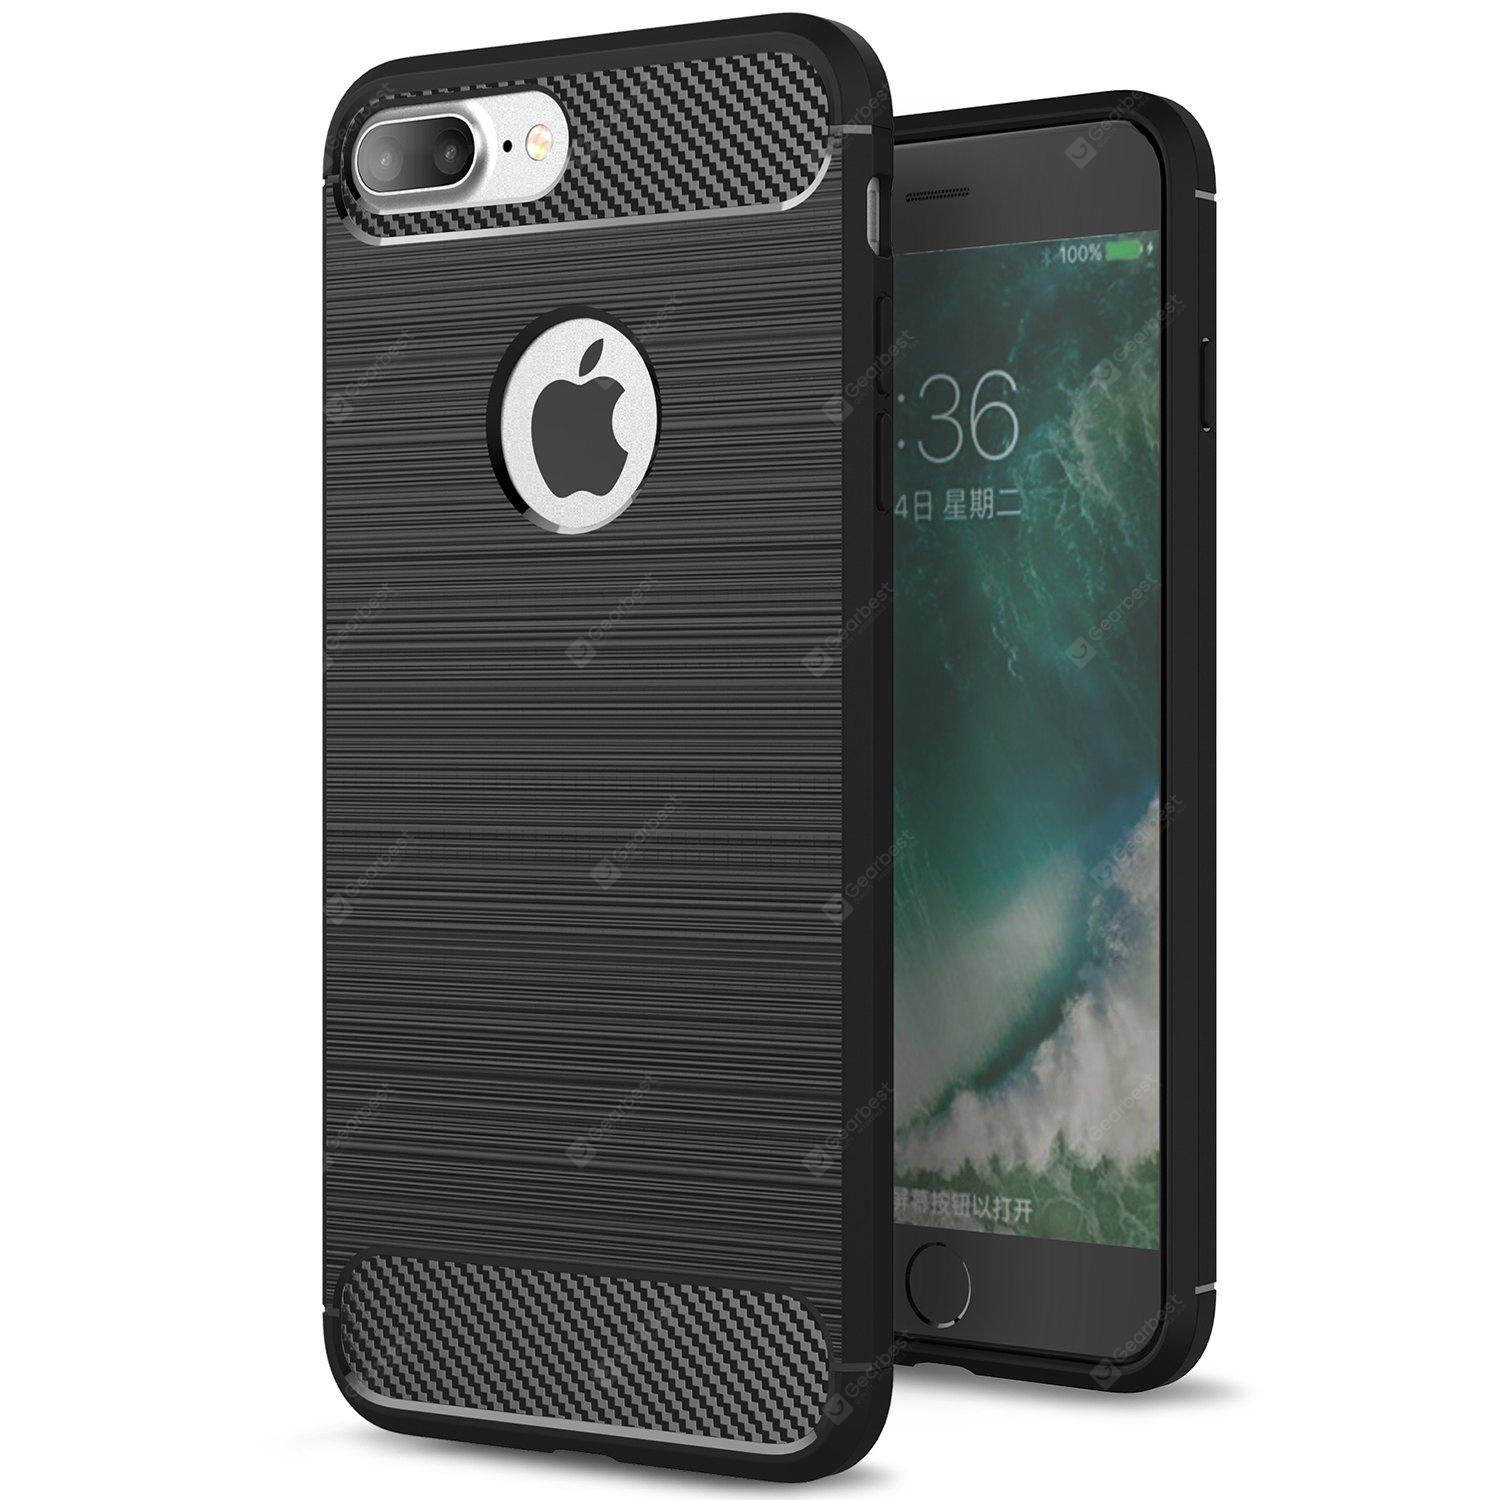 ASLING Carbon Fiber TPU Soft Case Cover for iPhone 7 Plus